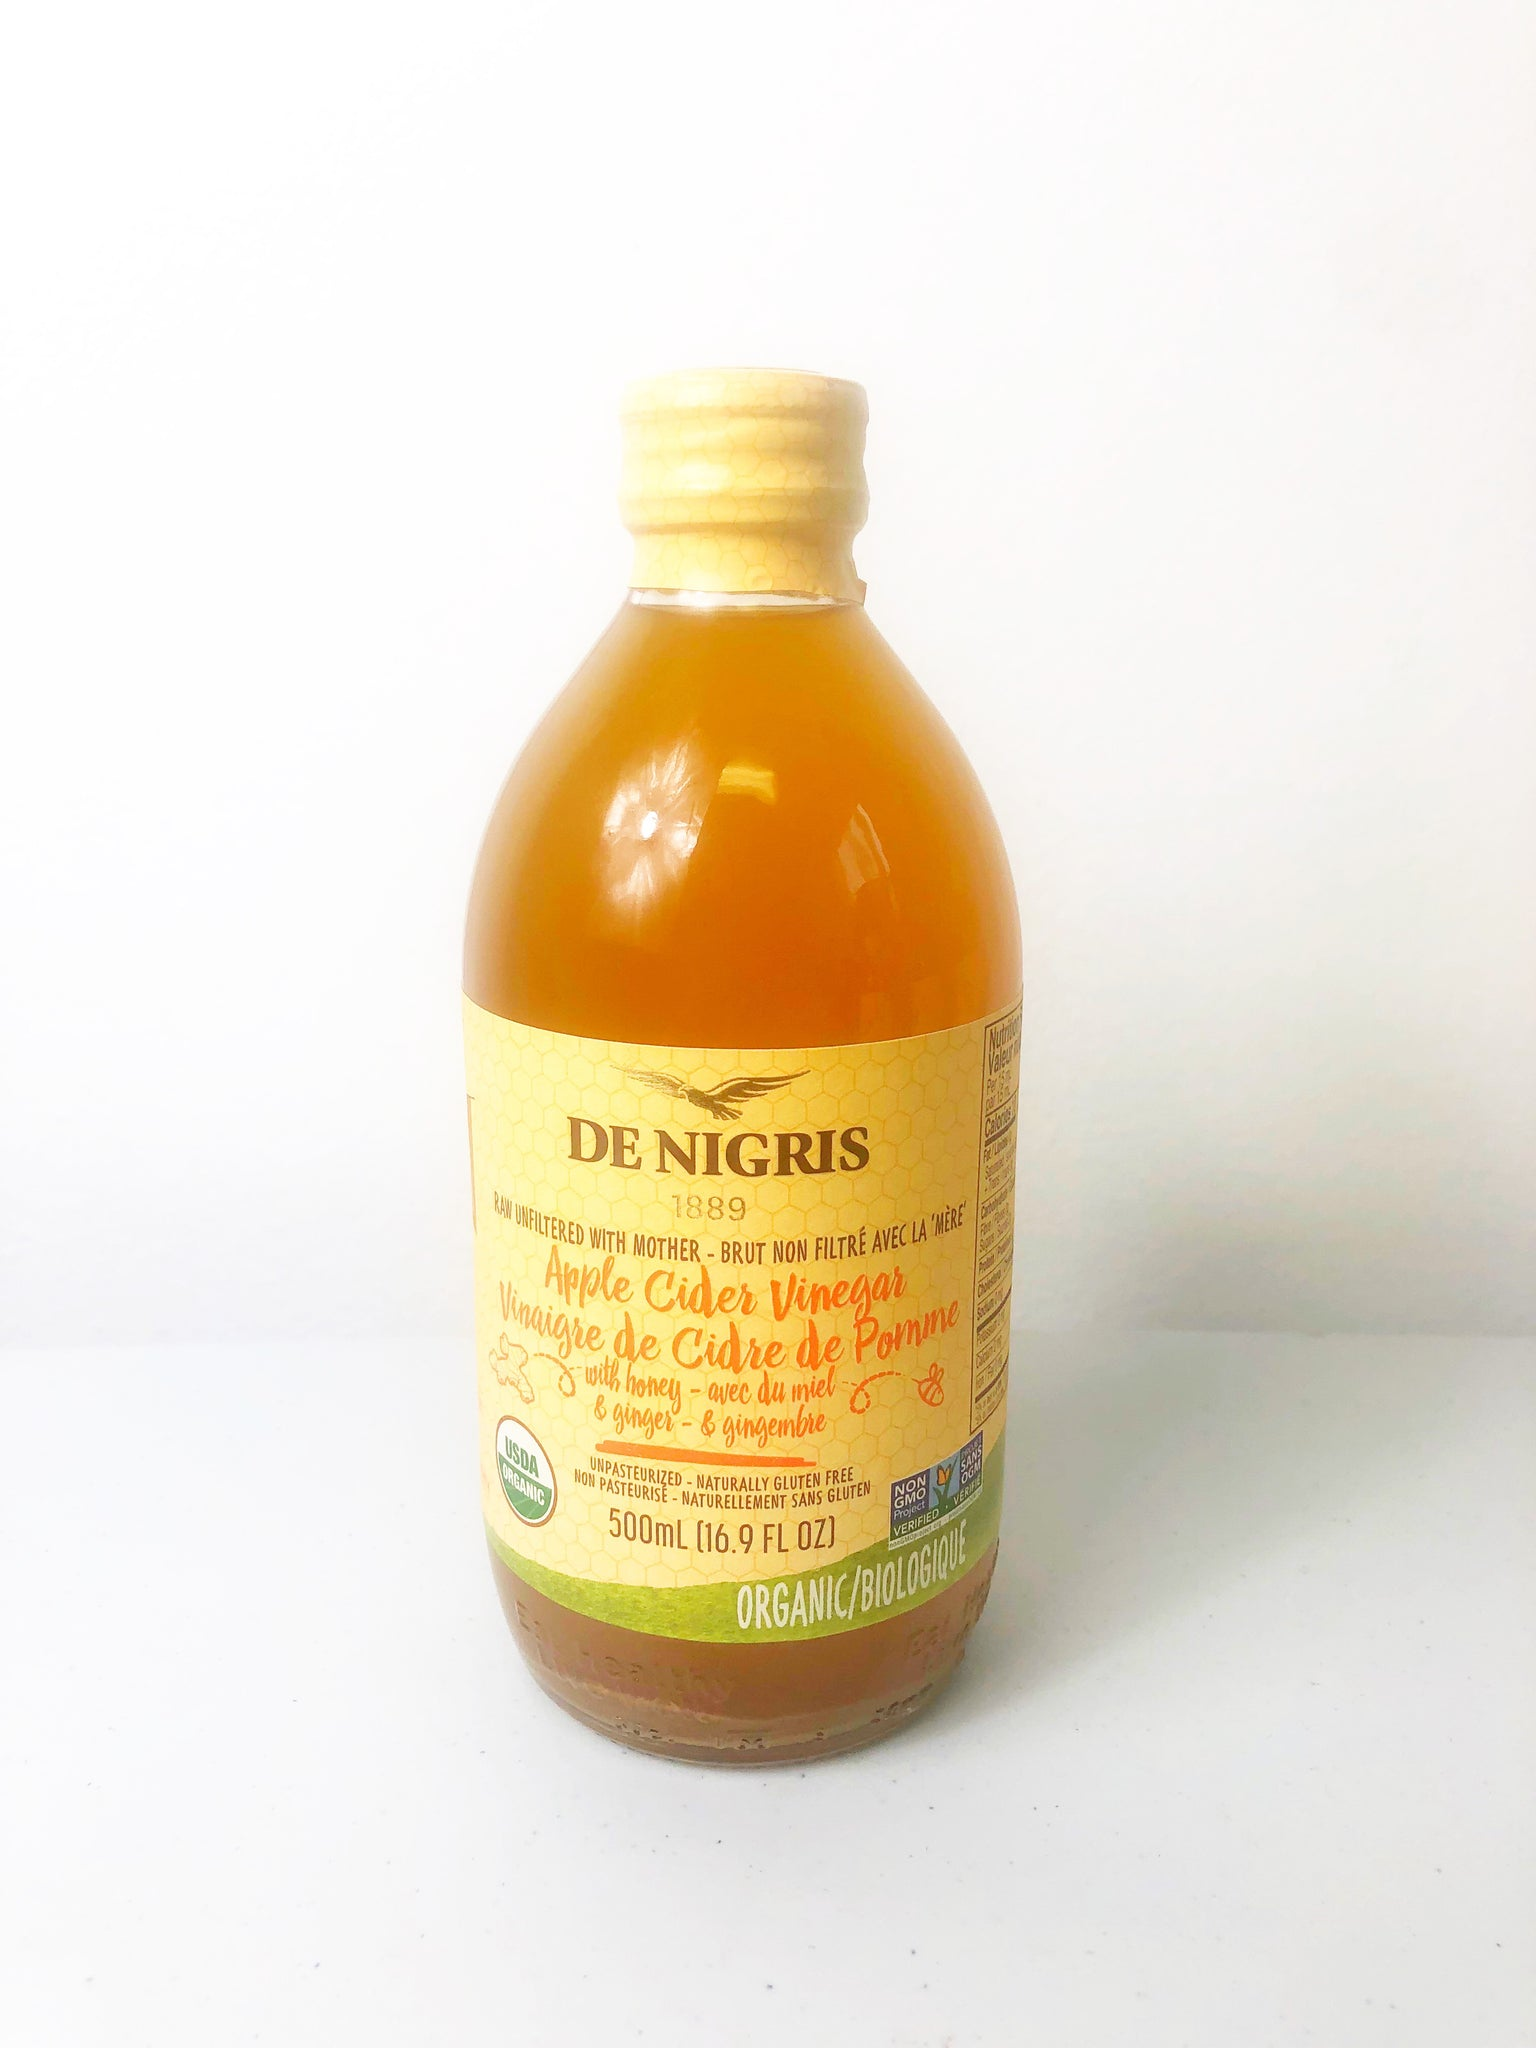 De Nigris Organic, Raw & Unfiltered Vinegar